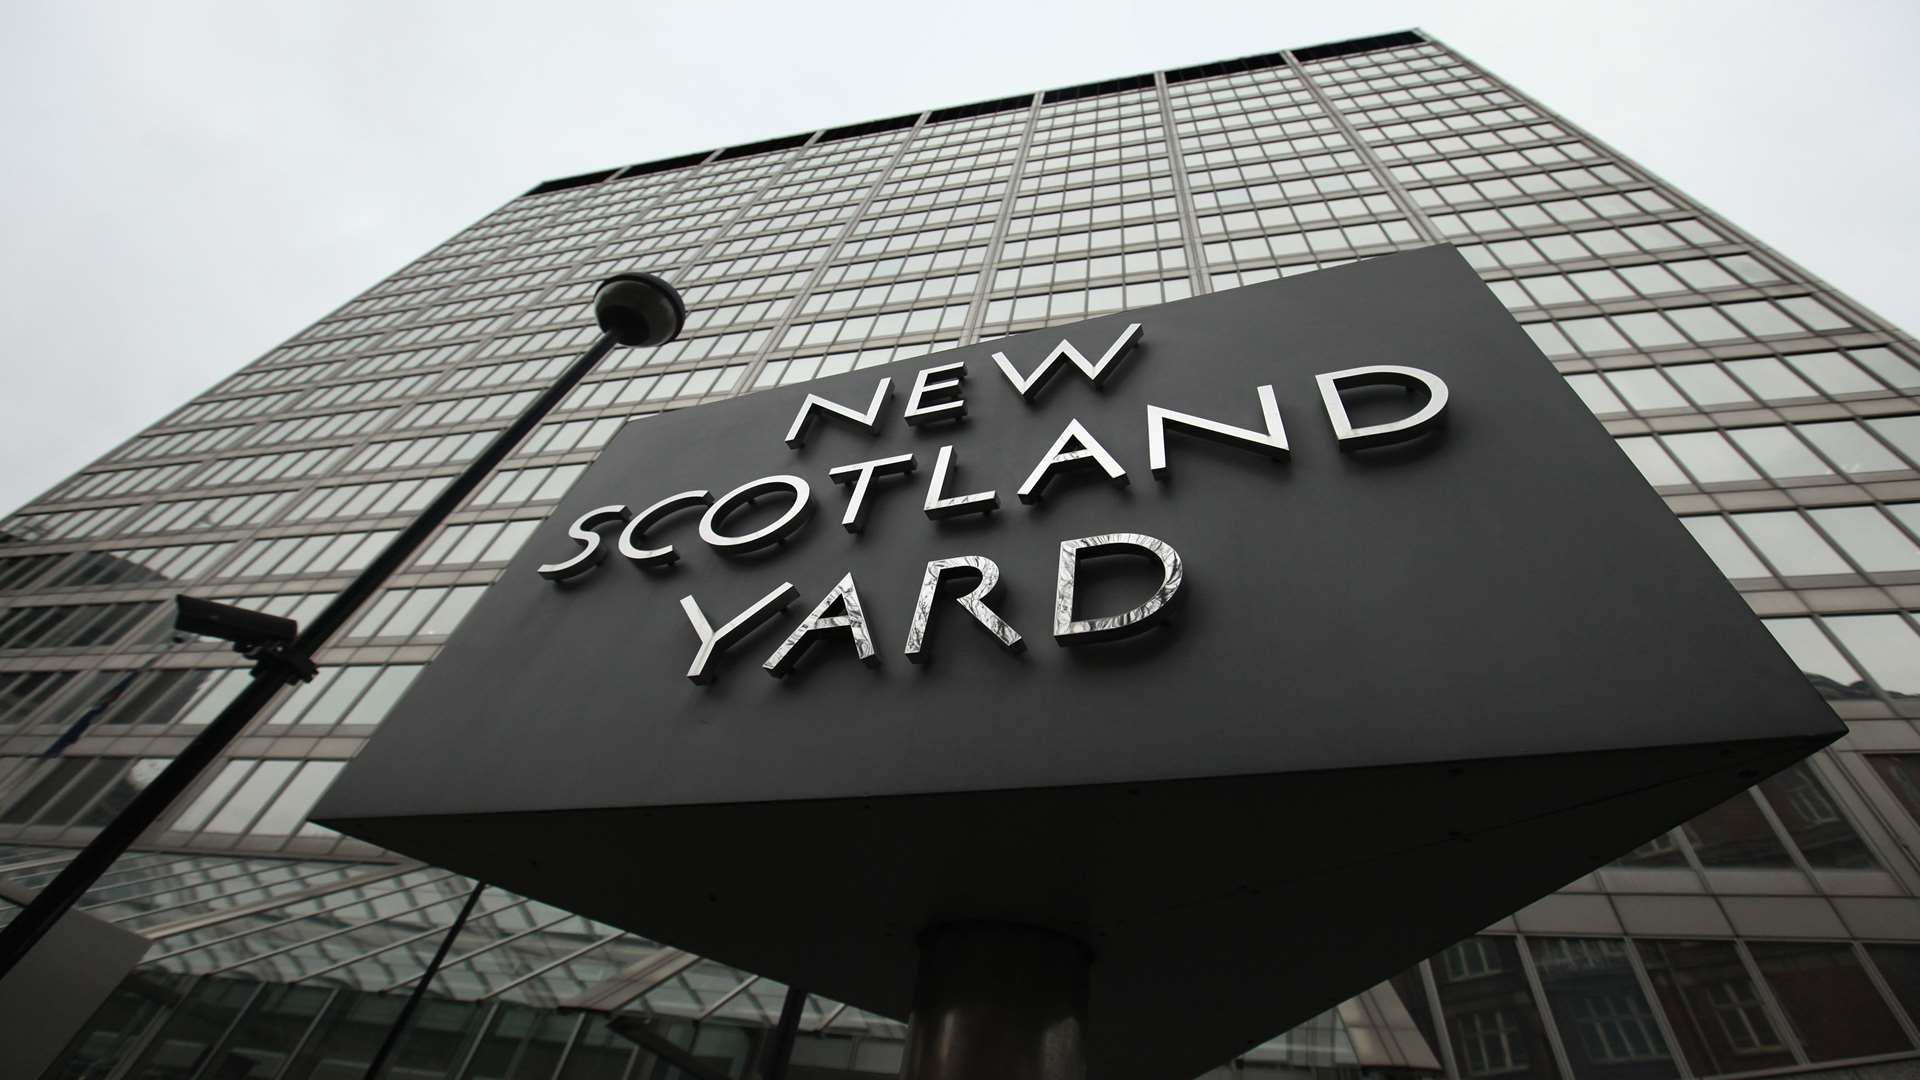 The arrest was made by officers from Scotland Yard